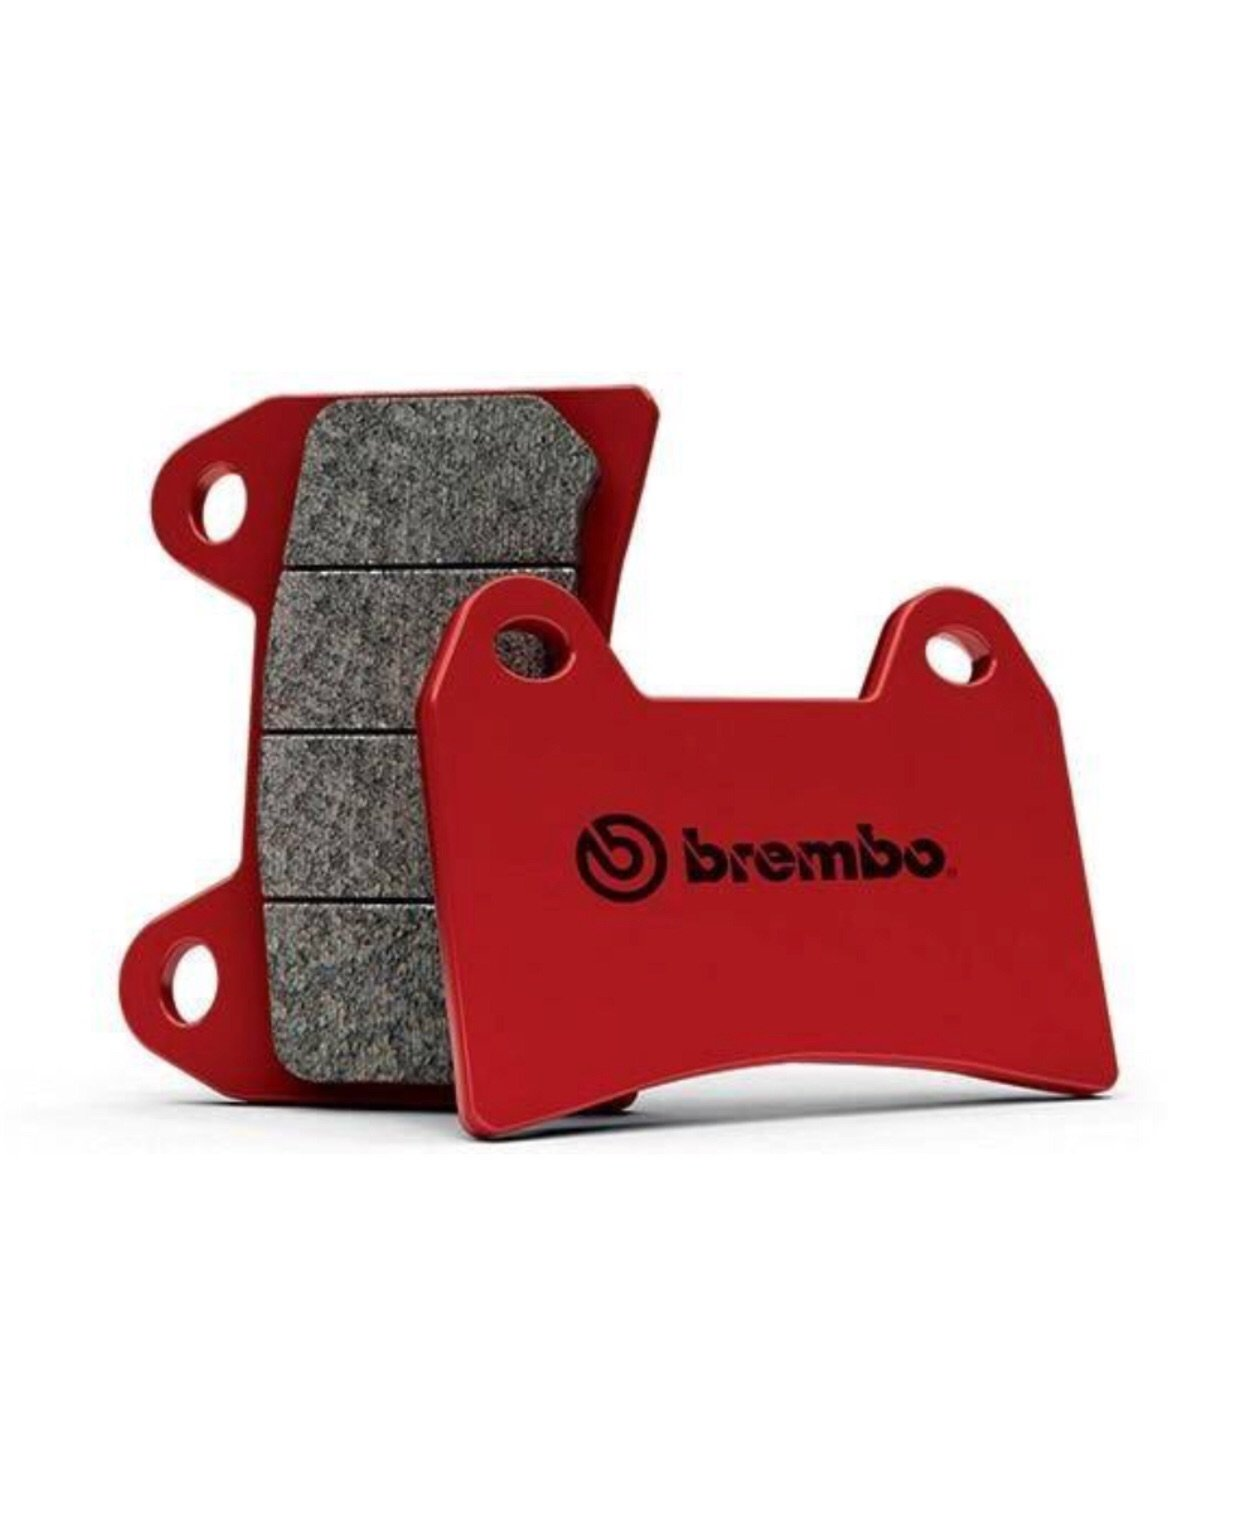 Brake Pads - Kawasaki, Brake Pads, Brembo - Race and Trackday Parts